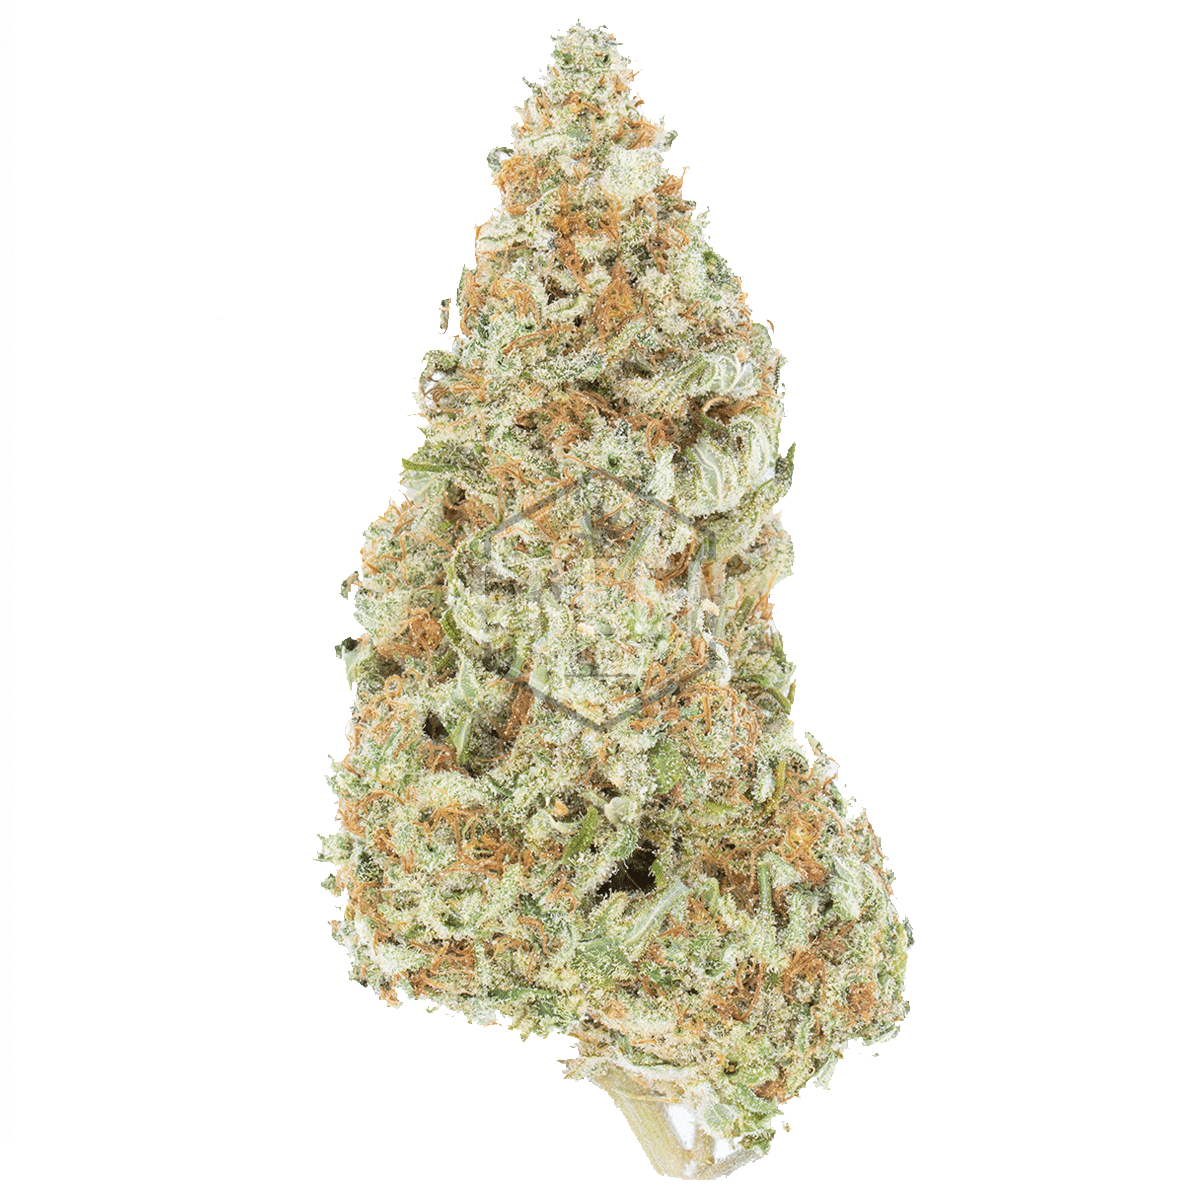 Bruce Banner by Green Society - Image © 2018 Green Society. All Rights Reserved.